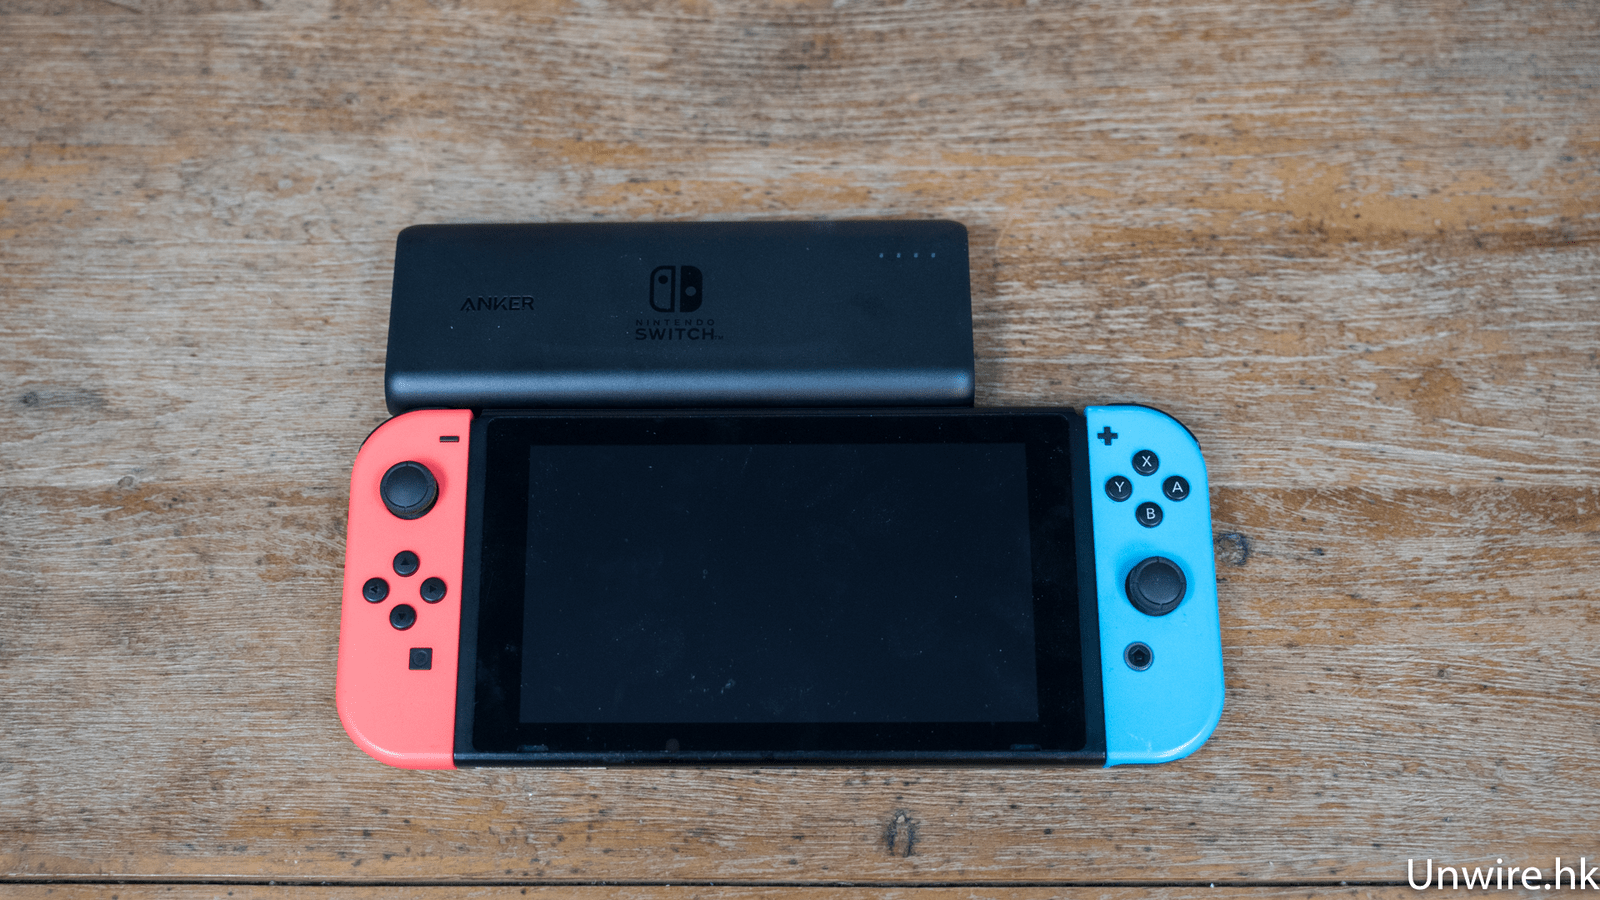 anker powercore 20100 nintendo switch edition 充電器